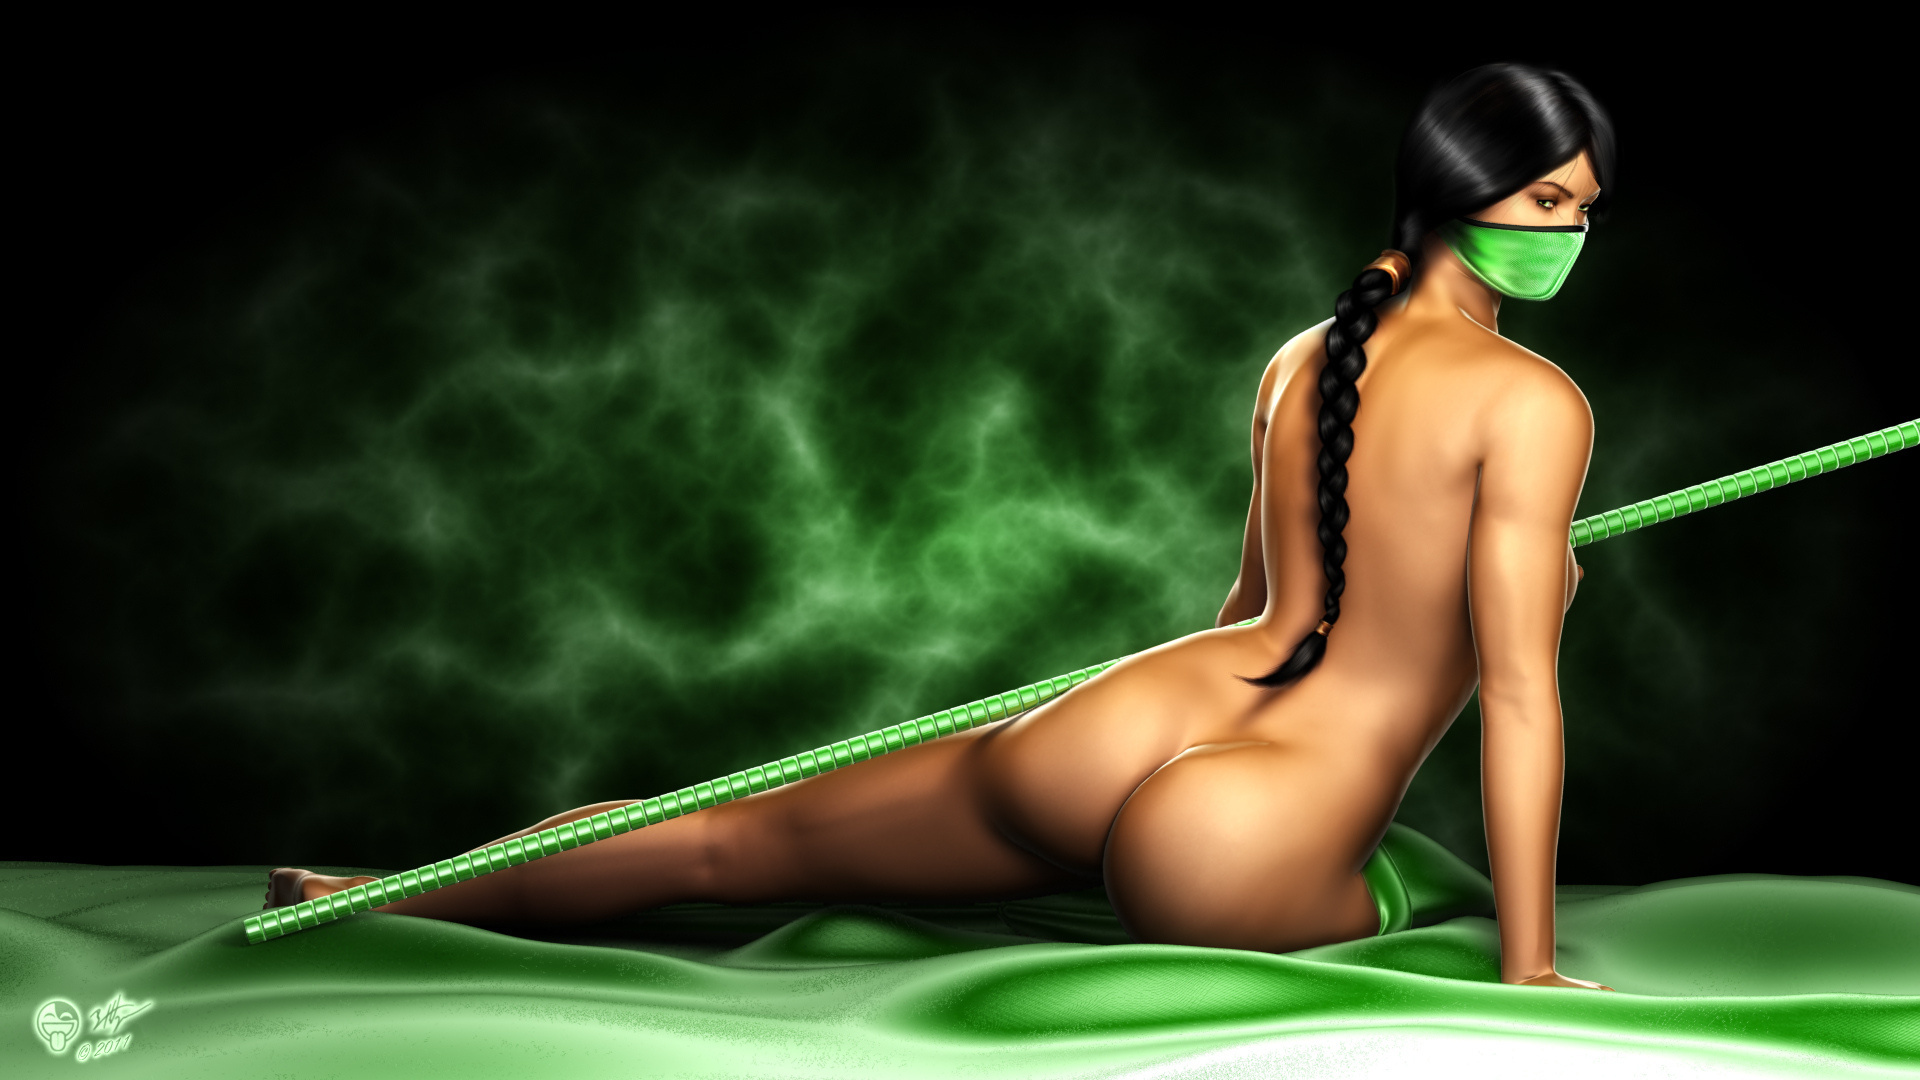 Sexy girls of mortal kombat nude, mature aunt sex fantasy